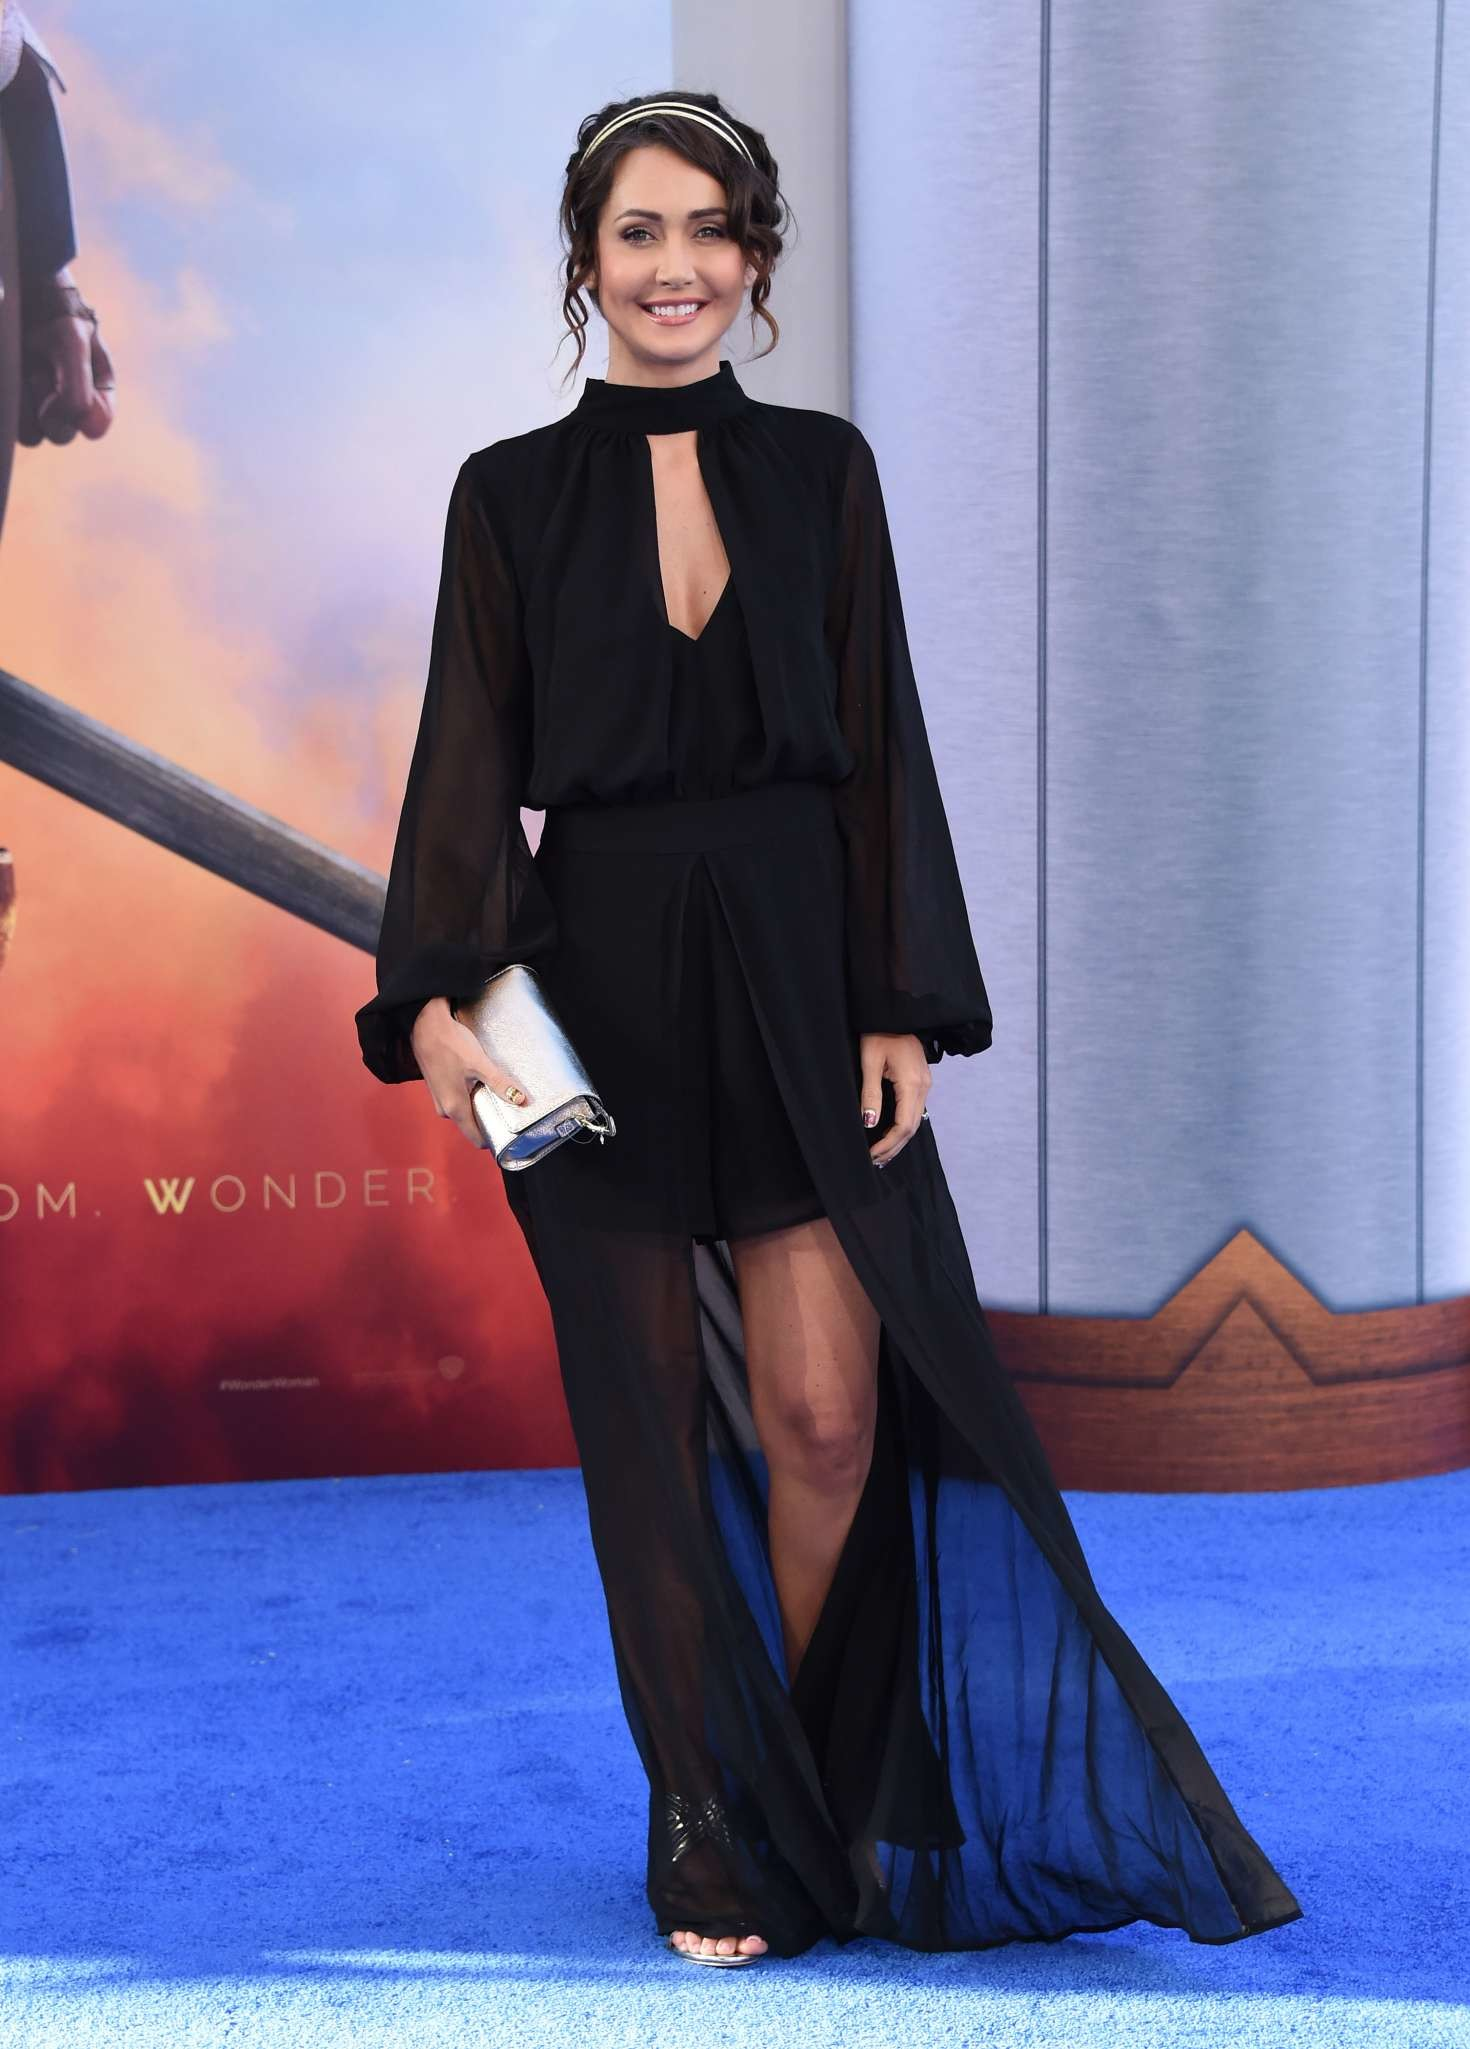 Jessica Chobot: Wonder Woman Premiere in Los Angeles -02 – Full Size